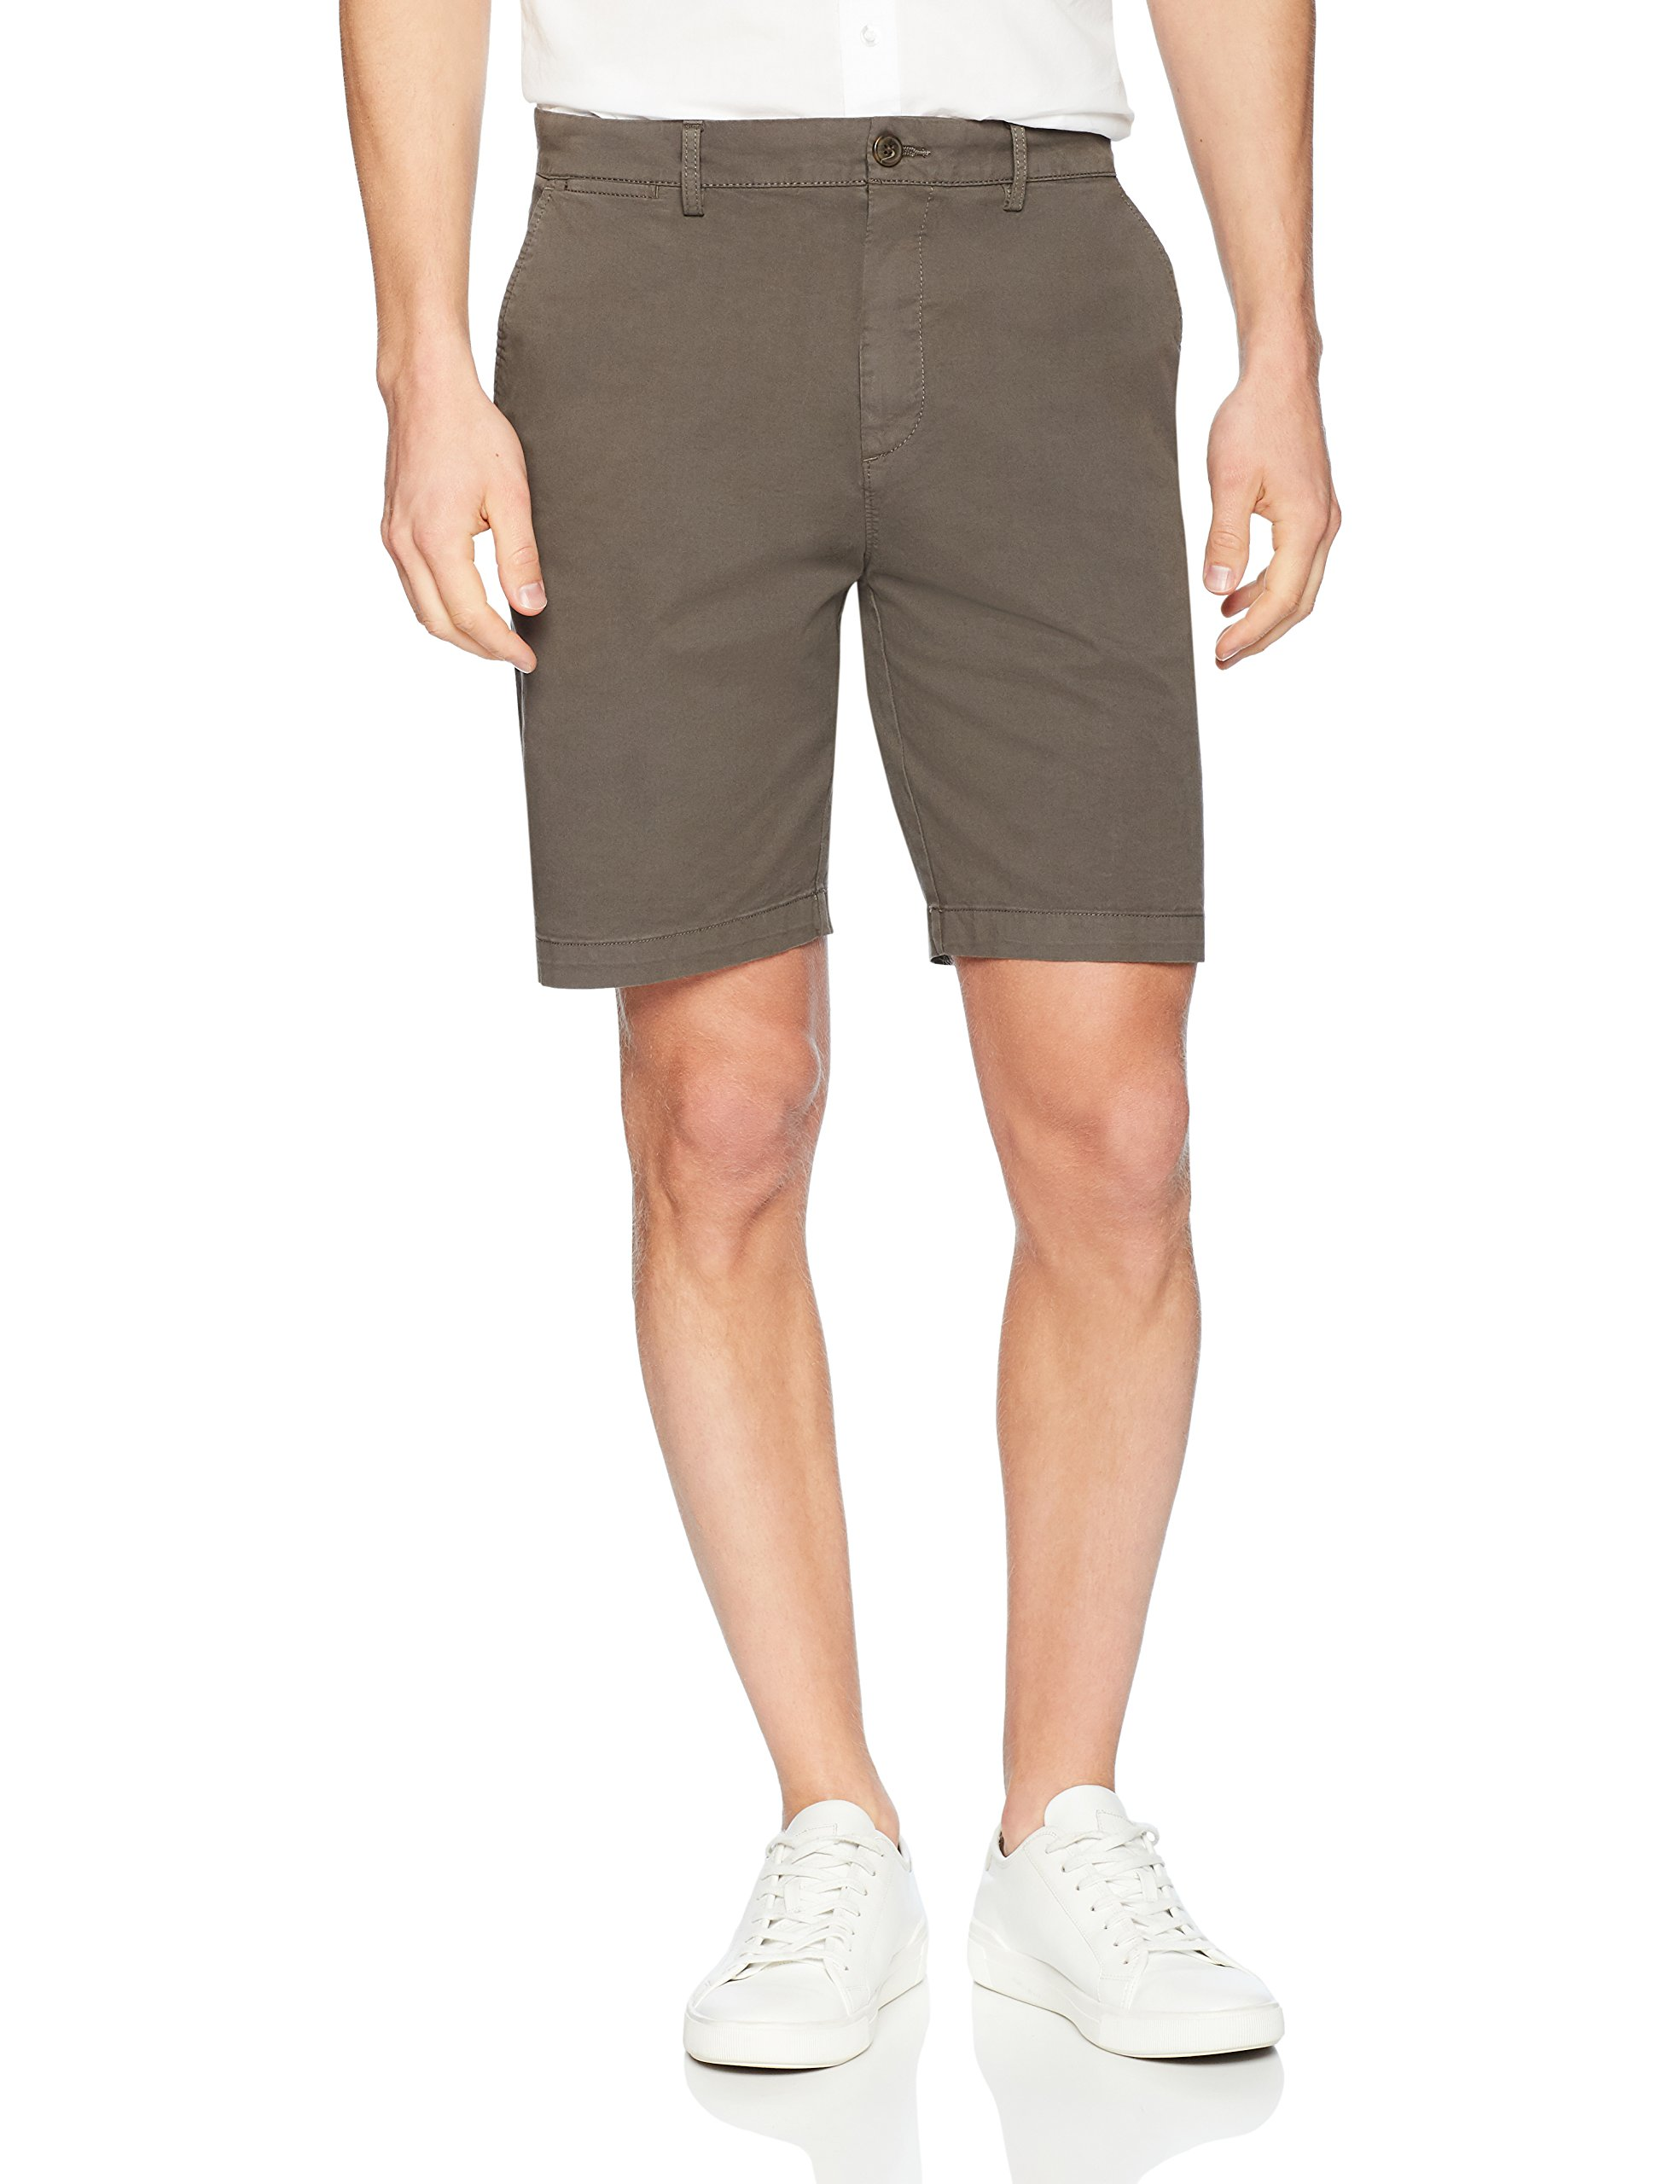 Goodthreads Men's 9'' Inseam Flat-Front Stretch Chino Shorts, Eiffel Tower, 38